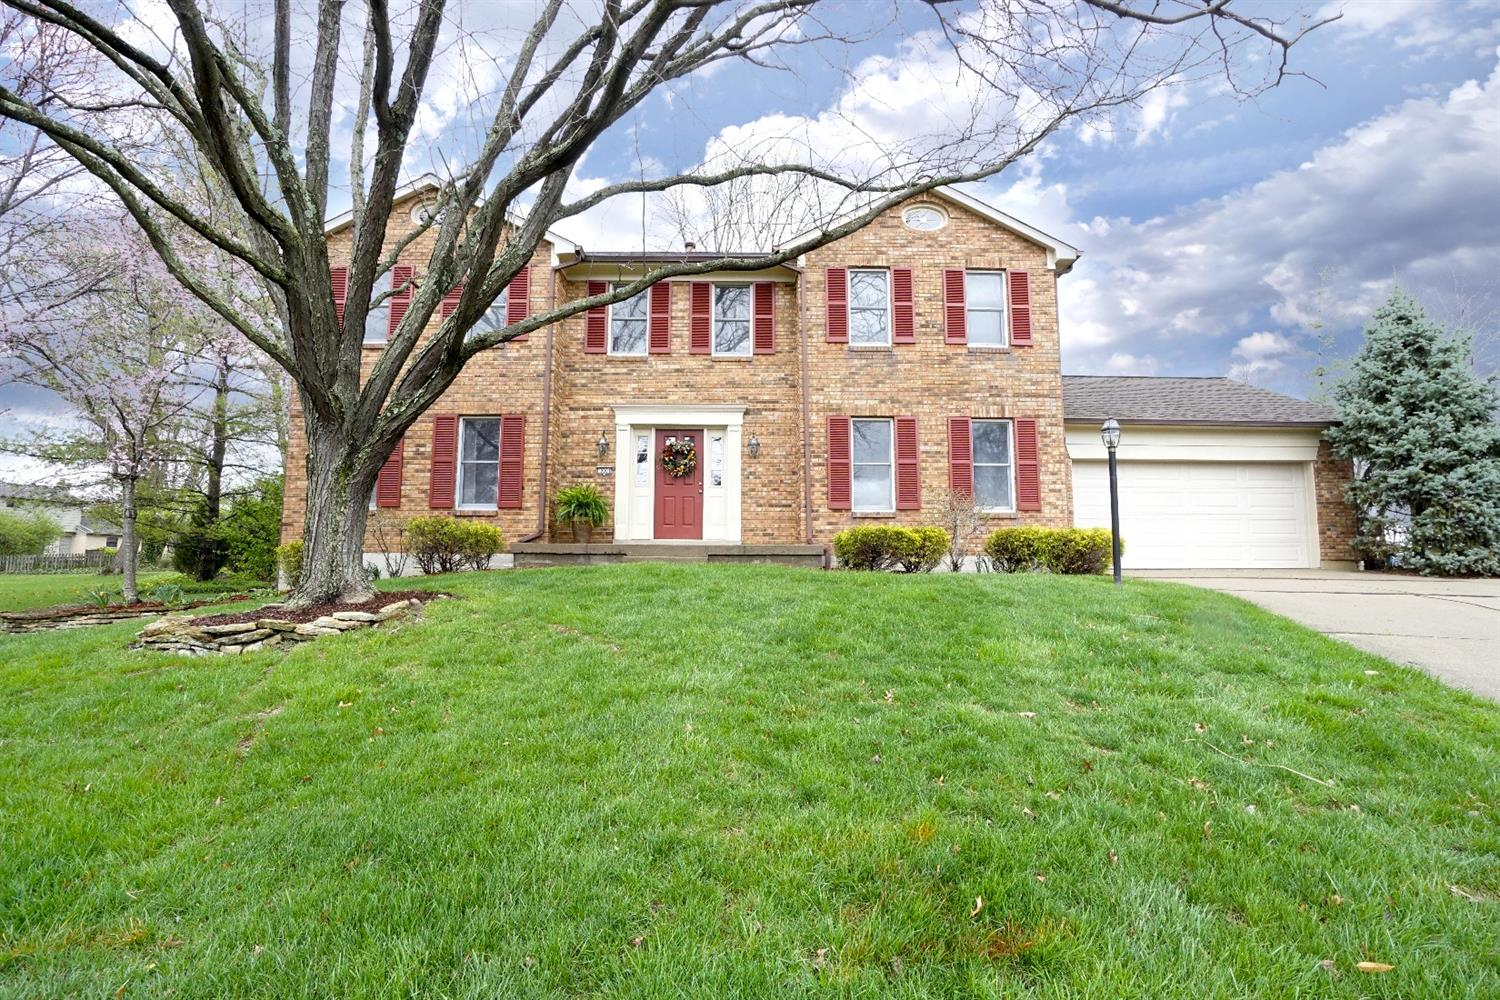 10001 Sonya Lane, West Chester, OH 45241